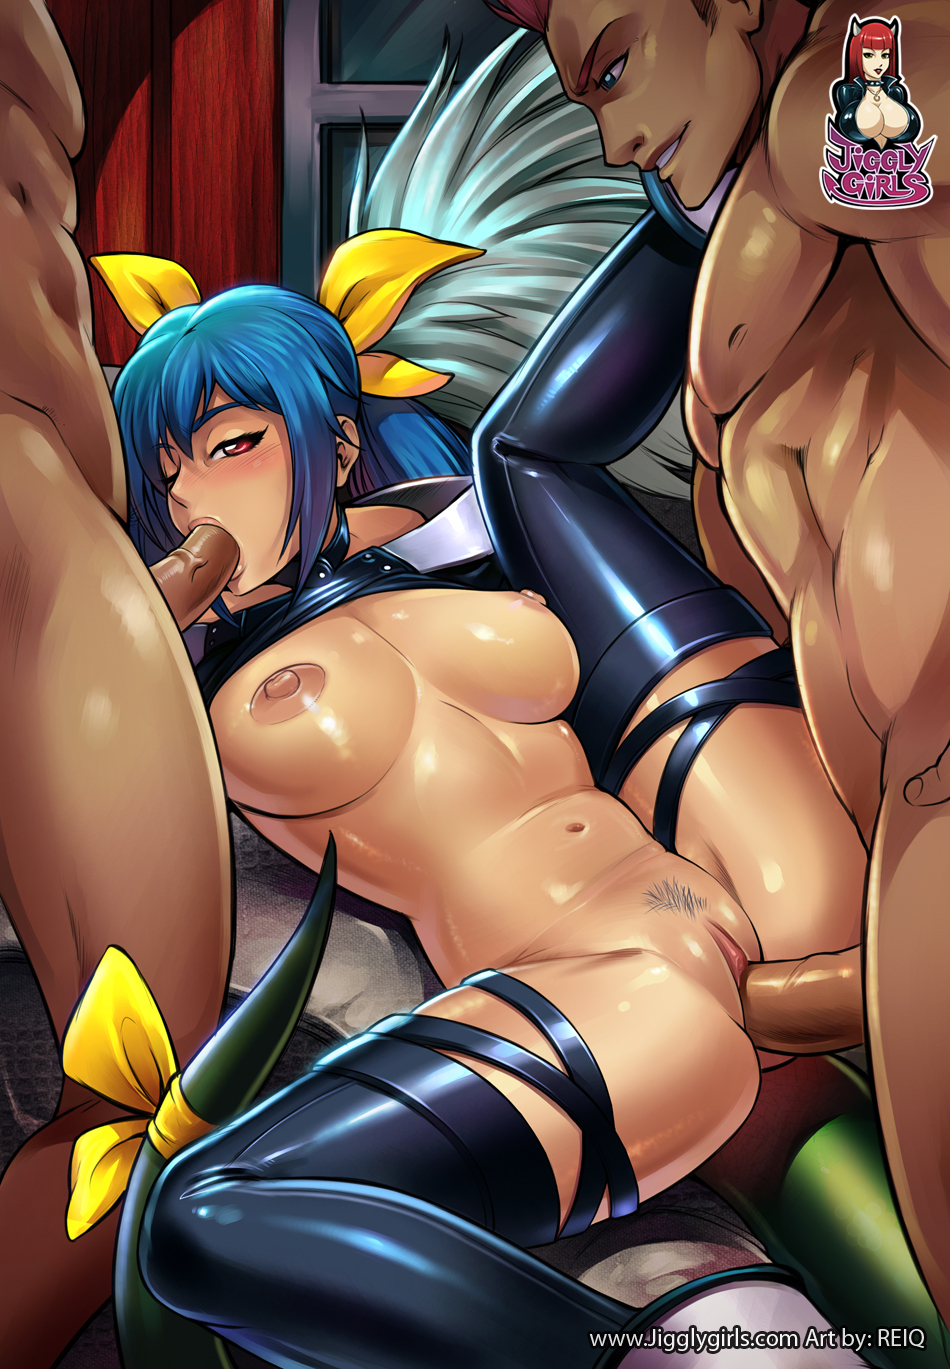 Anime femaledemon porn pics naked galleries